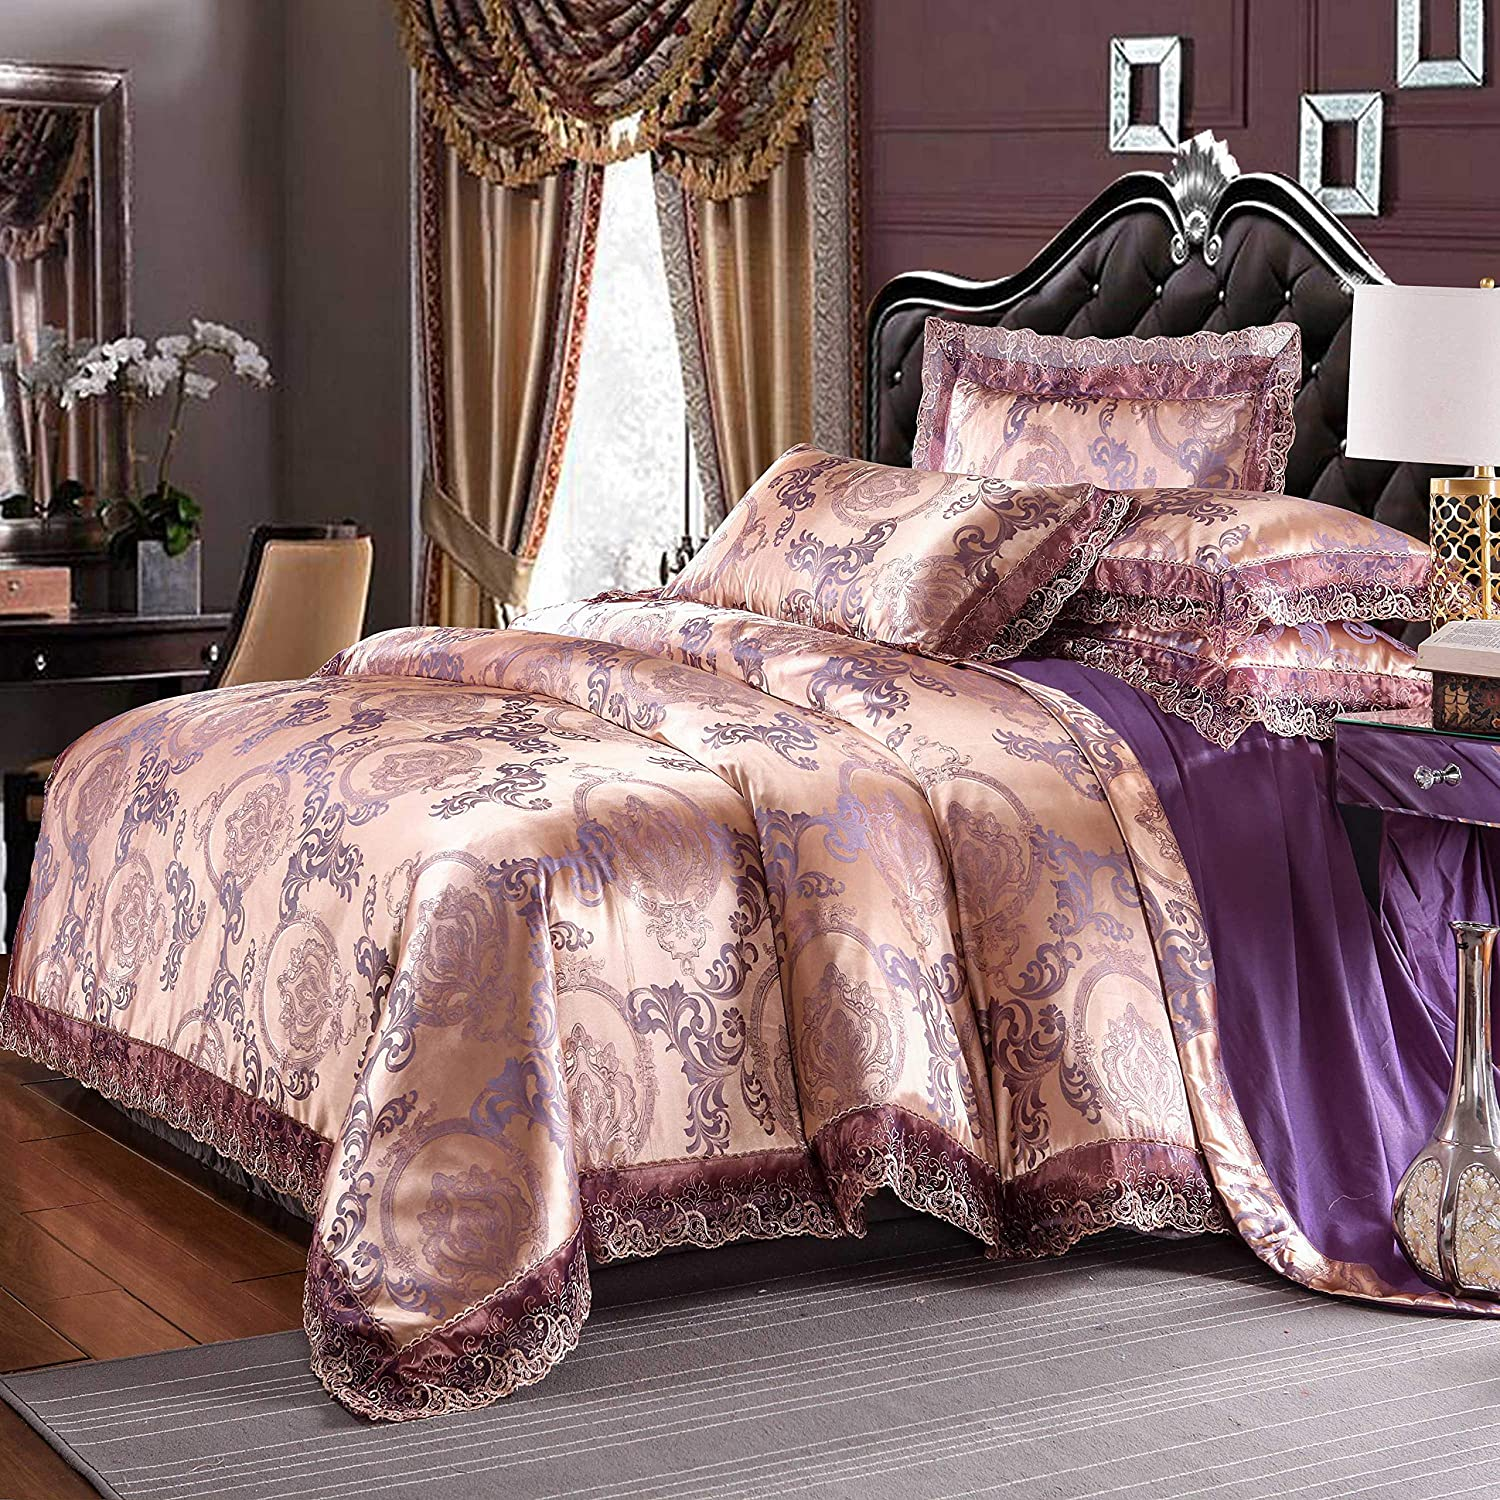 UniTendo 4 Piece Sateen Cotton Jacquard Duvet Cover Sets,Delicate Floral Pattern Bedding Sets Duvet Cover Flat Sheet and 2 Pillowcases, King Size Champagne Purple.